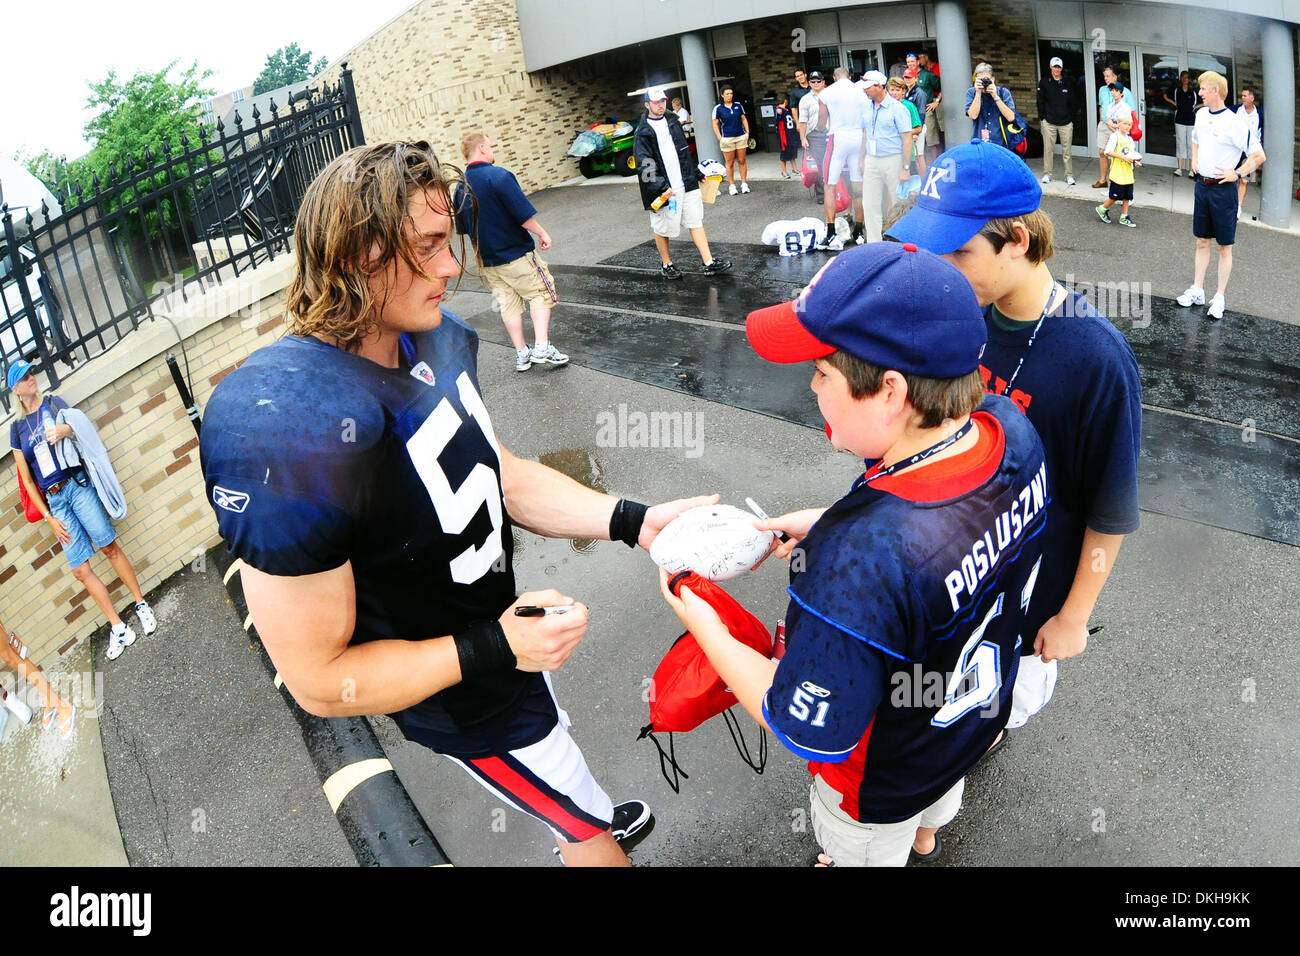 Buffalo Bills linebacker Paul Posluszny signs for some fans after